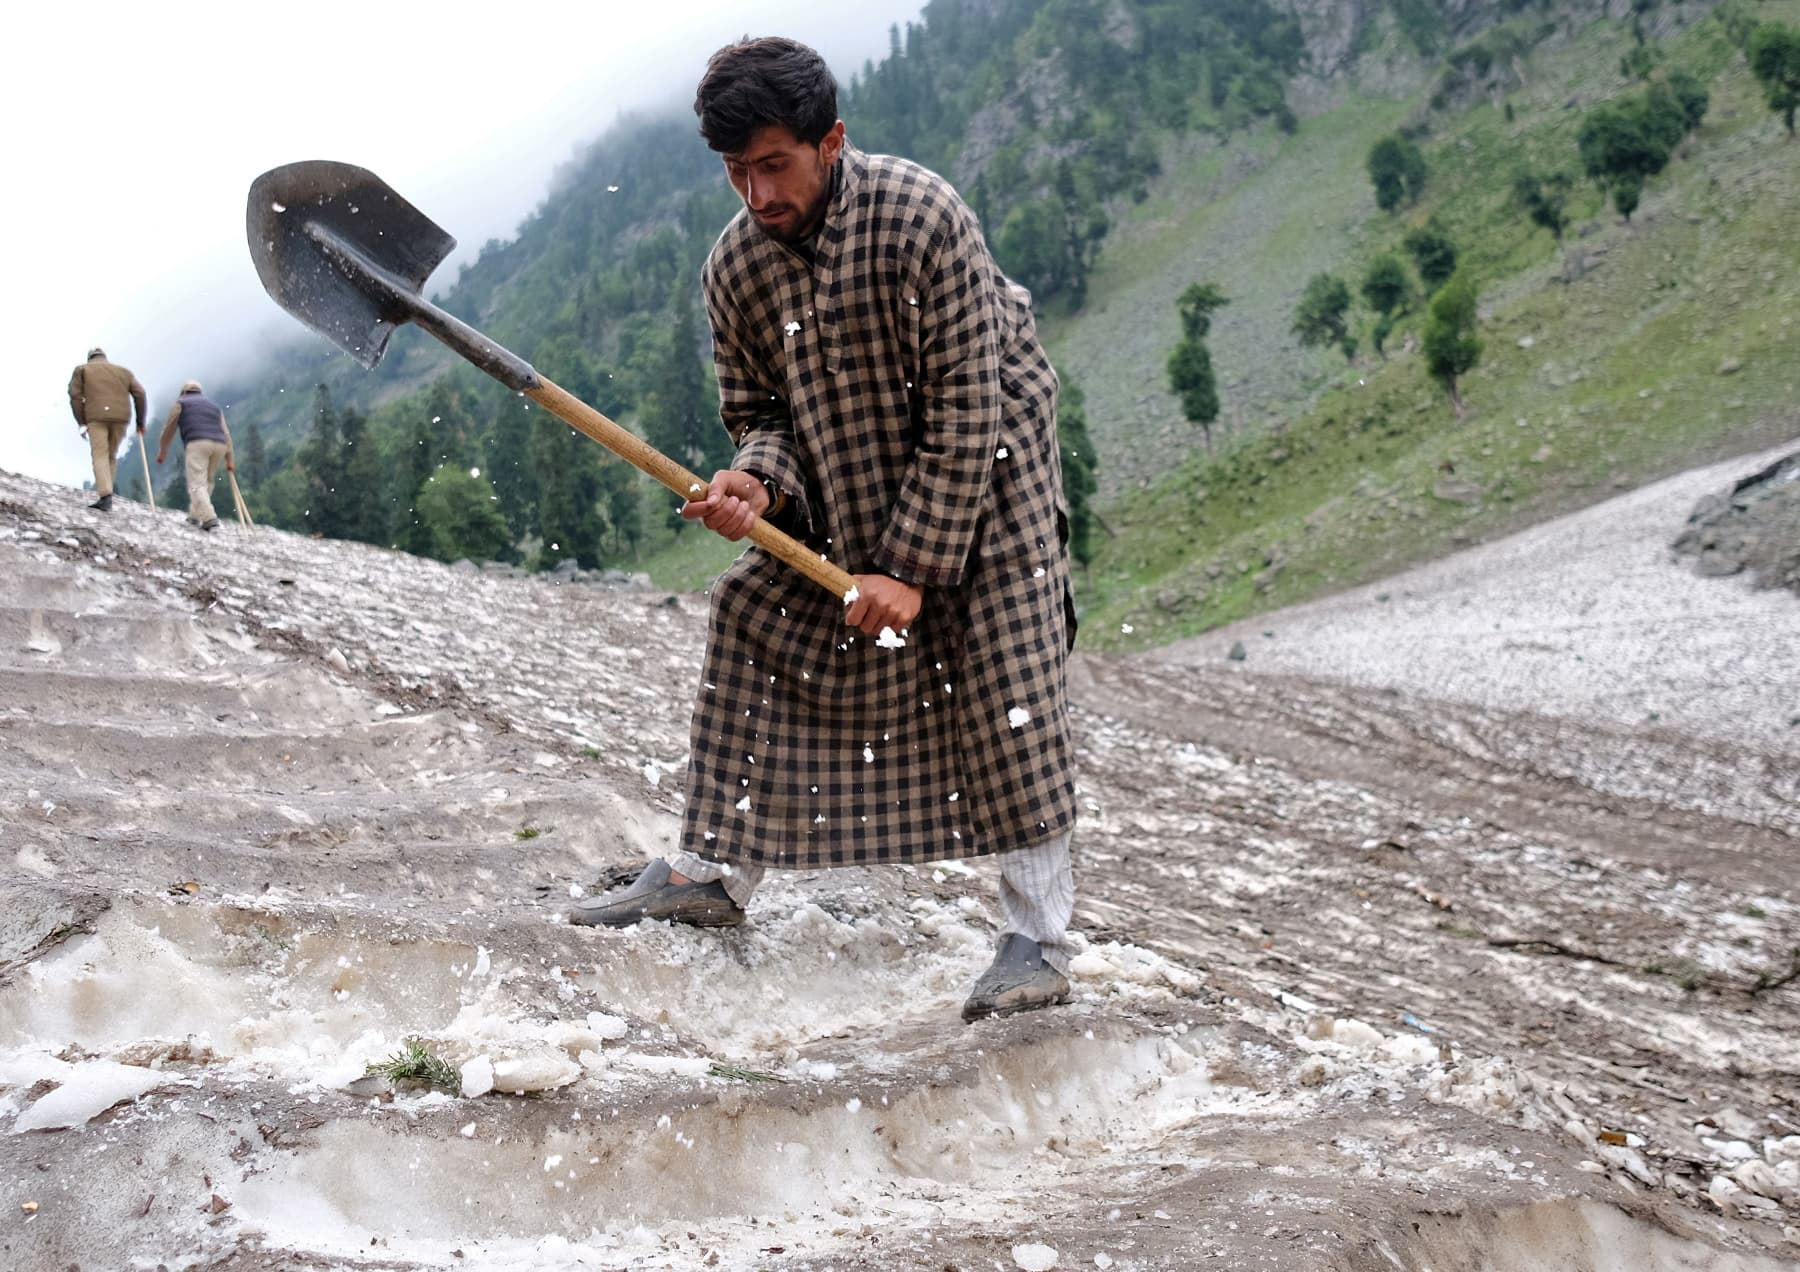 A Kashmiri man cuts snow to make way for Hindu pilgrims to trek to reach the holy Amarnath cave shrine, where they worship an ice stalagmite that Hindus believe to be the symbol of Lord Shiva, near Pahalgam in Indian-occupied Kashmir on July 27. — Reuters